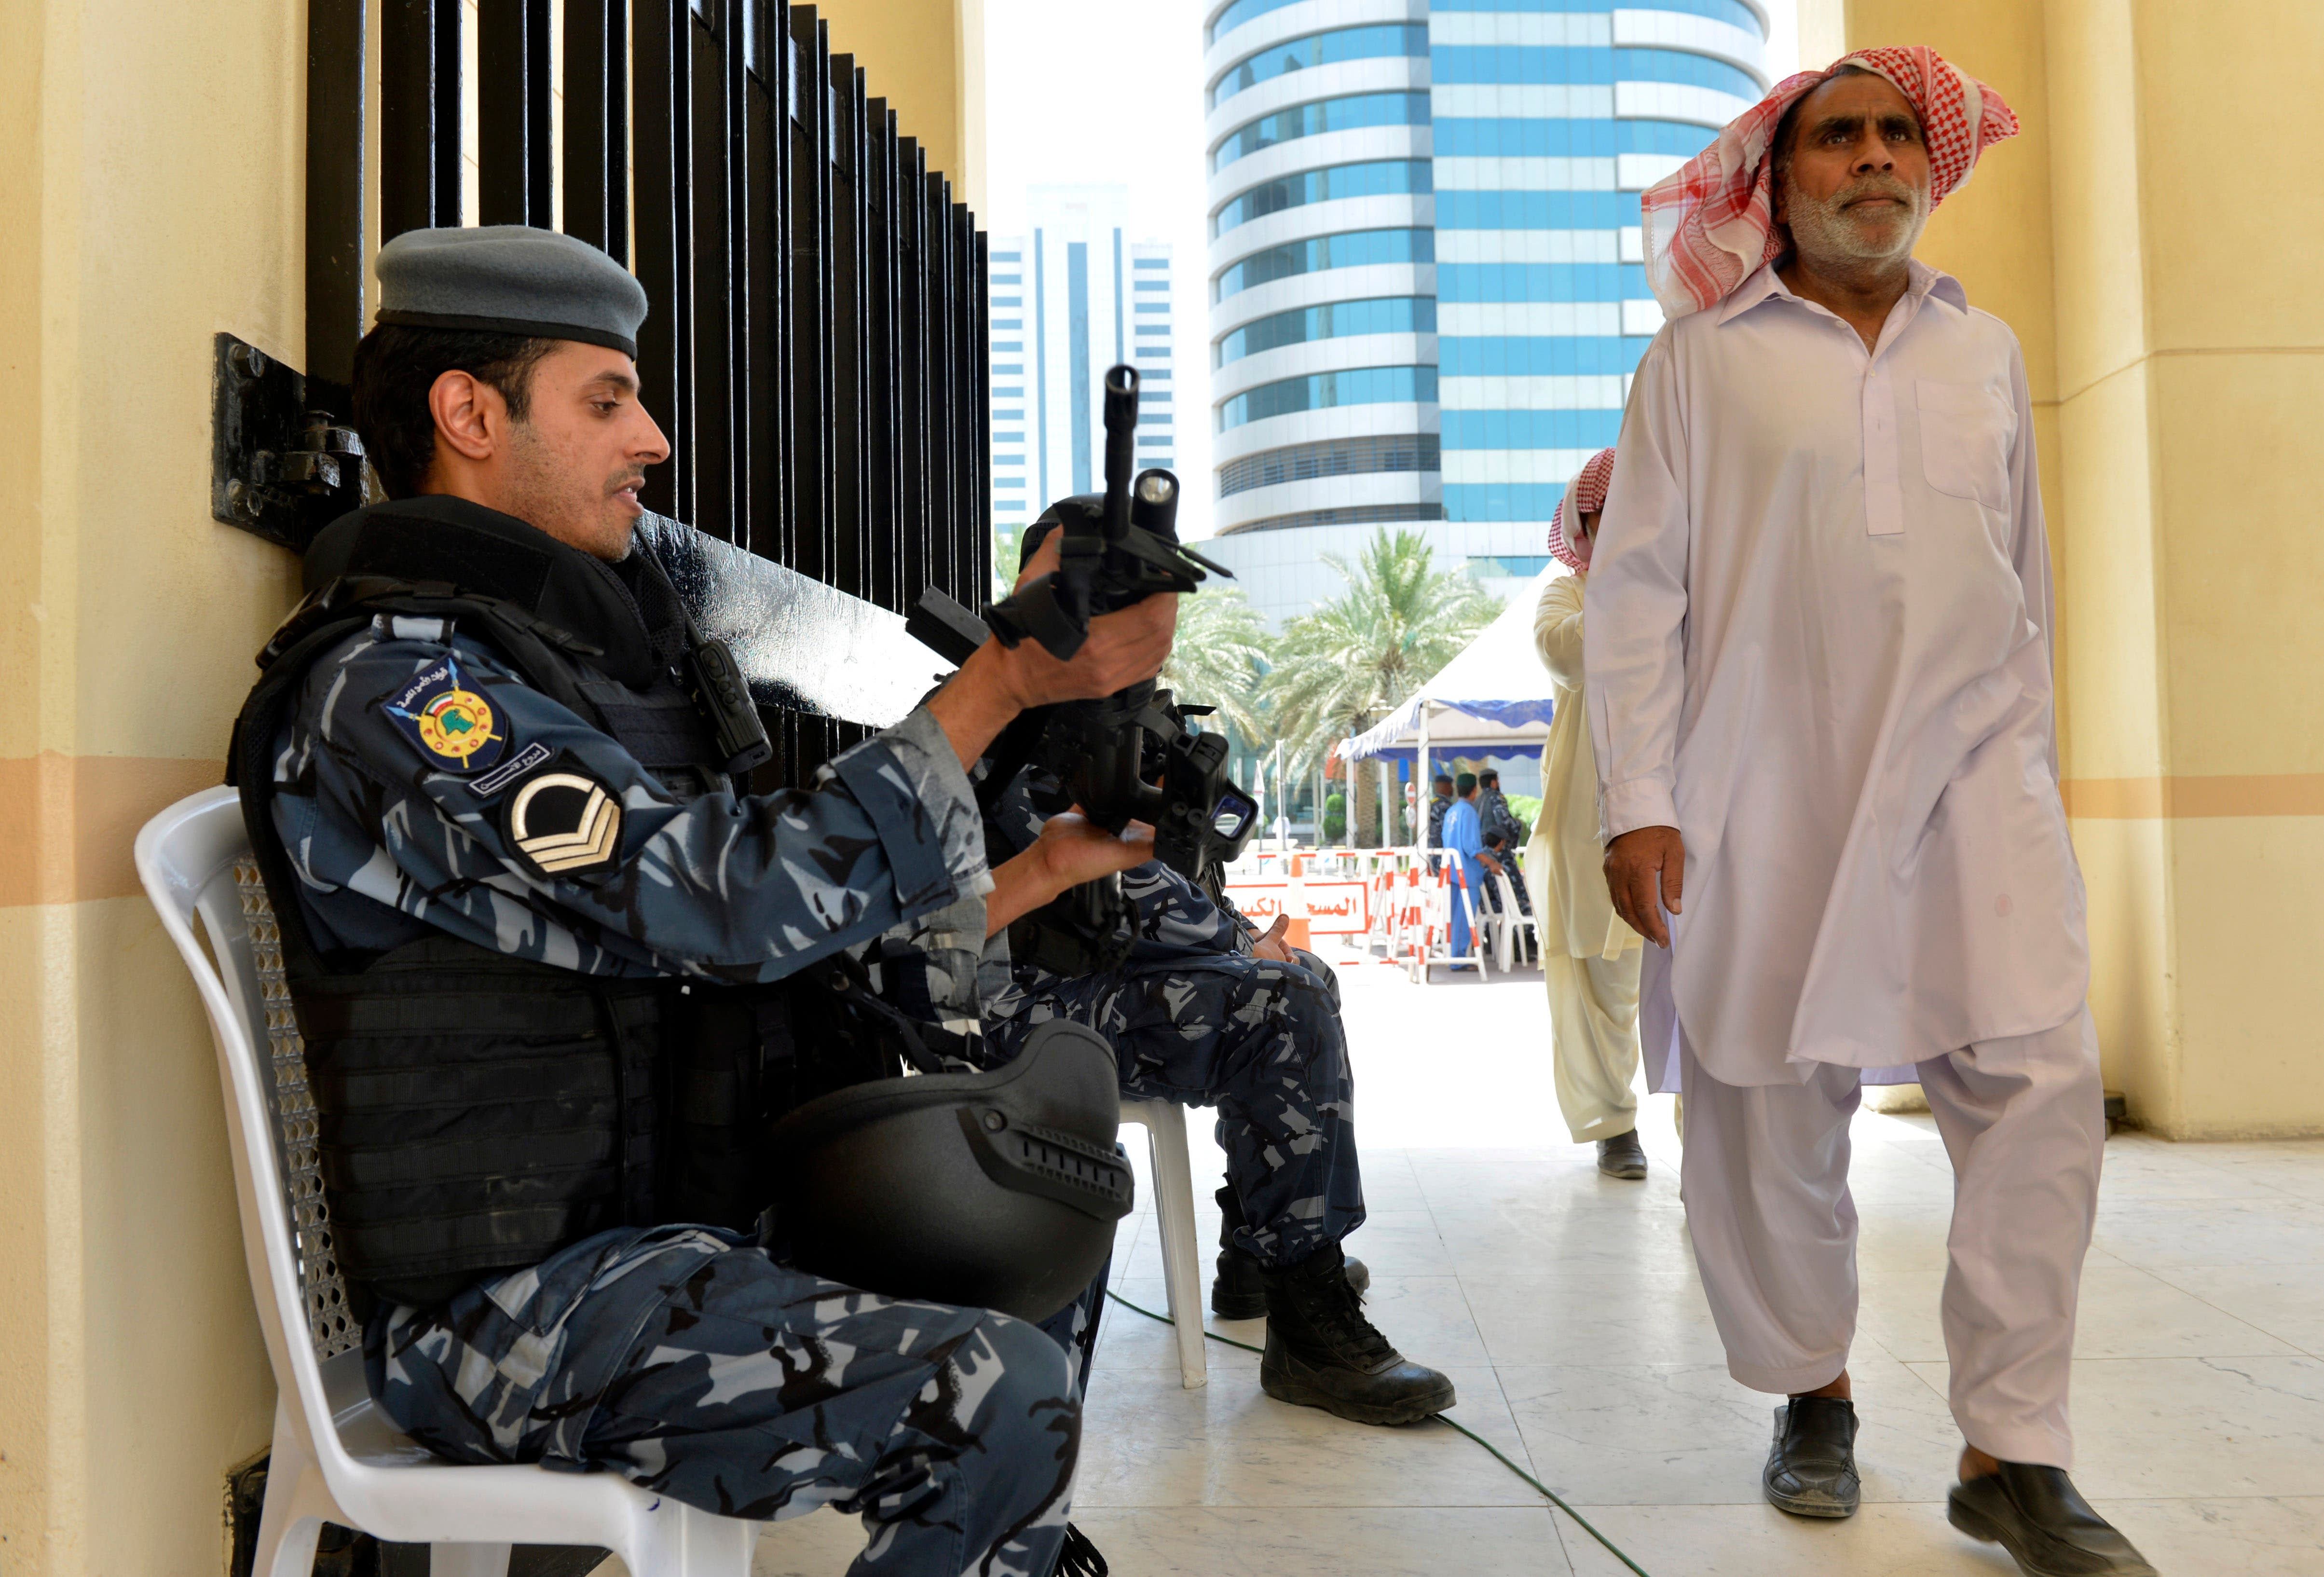 Kuwaiti police are on hand as worshippers arrive for joint Sunni-Shiite Friday prayers at the Grand Mosque in Kuwait City on Friday, July 3, 2015, one week after a suicide attack by an Islamic State sympathizer on Shiite worshippers. Instead of fueling the kind of sectarian animosity that has devastated Iraq and Syria, the Kuwait attack has reawakened a sense of national solidarity not seen since Saddam Hussein's 1990 invasion. (AP Photo)